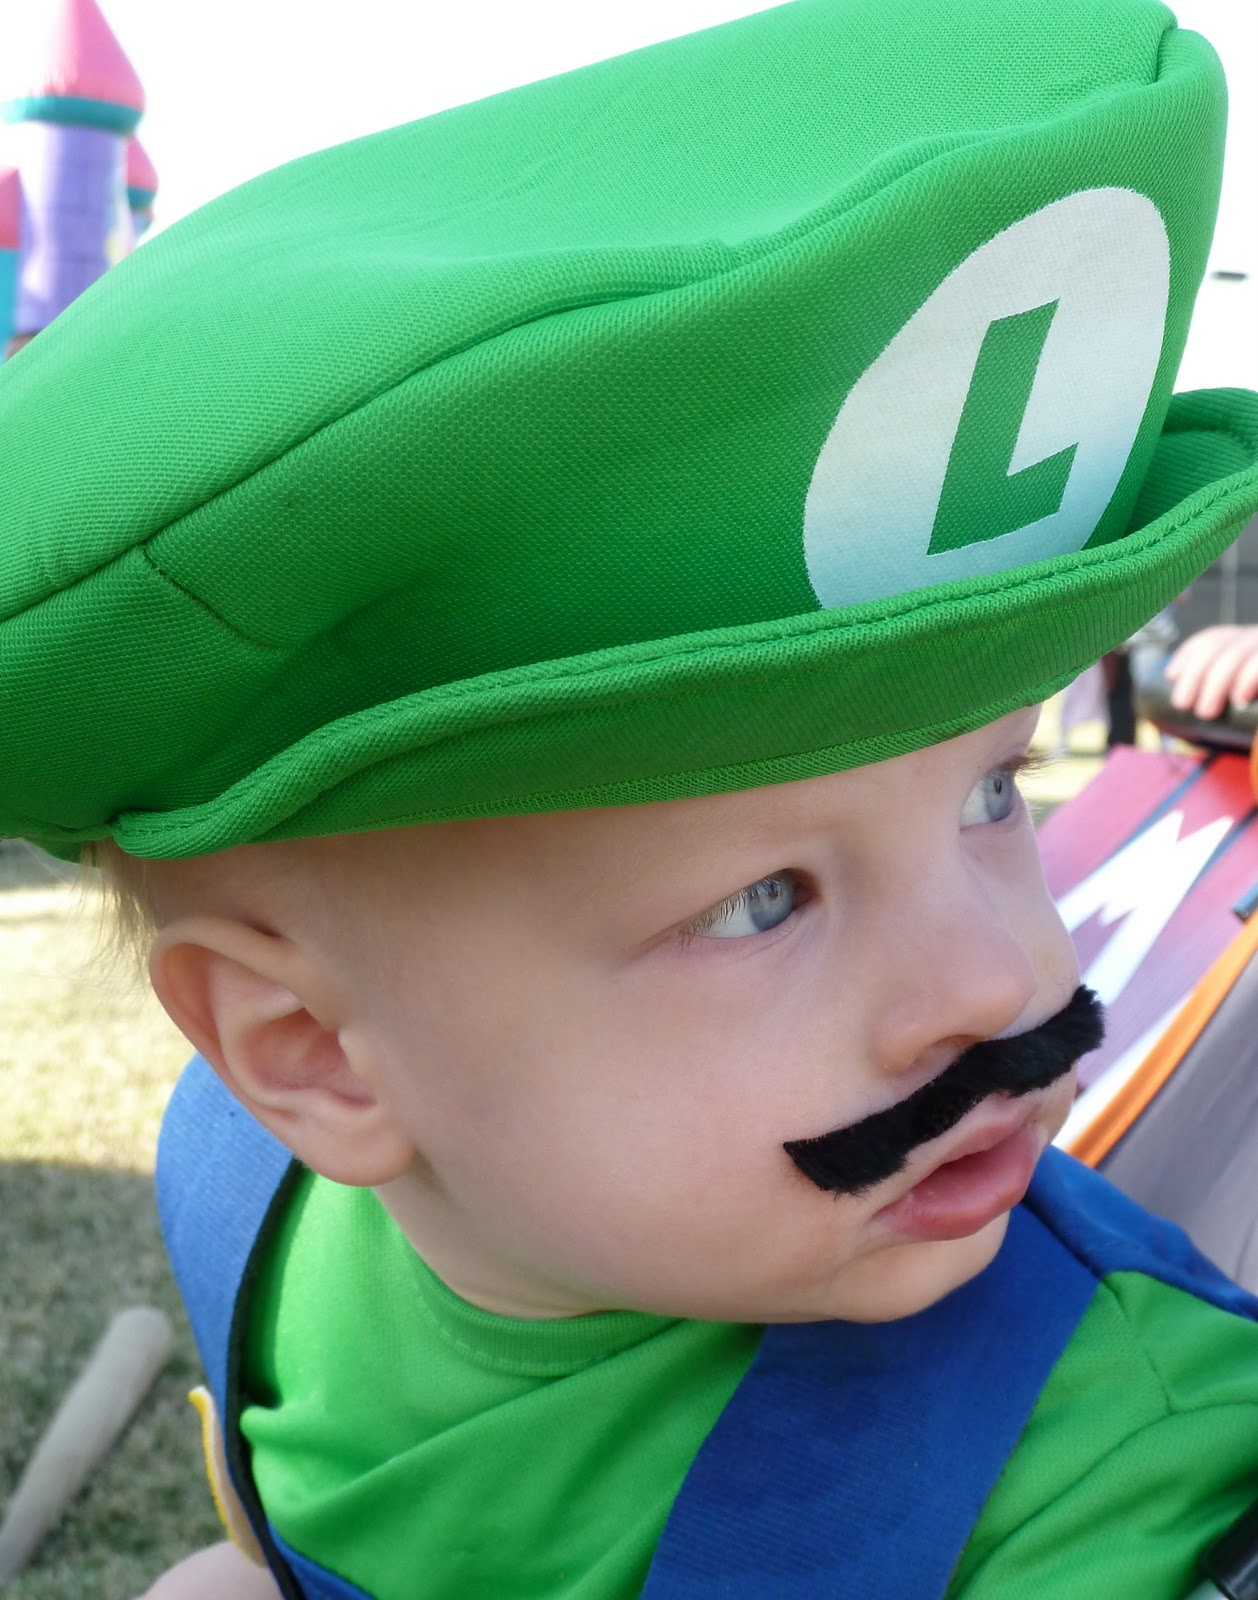 Wheelchair Mario Portable High Chairs Beyond Measure And Luigi Take Over Halloween